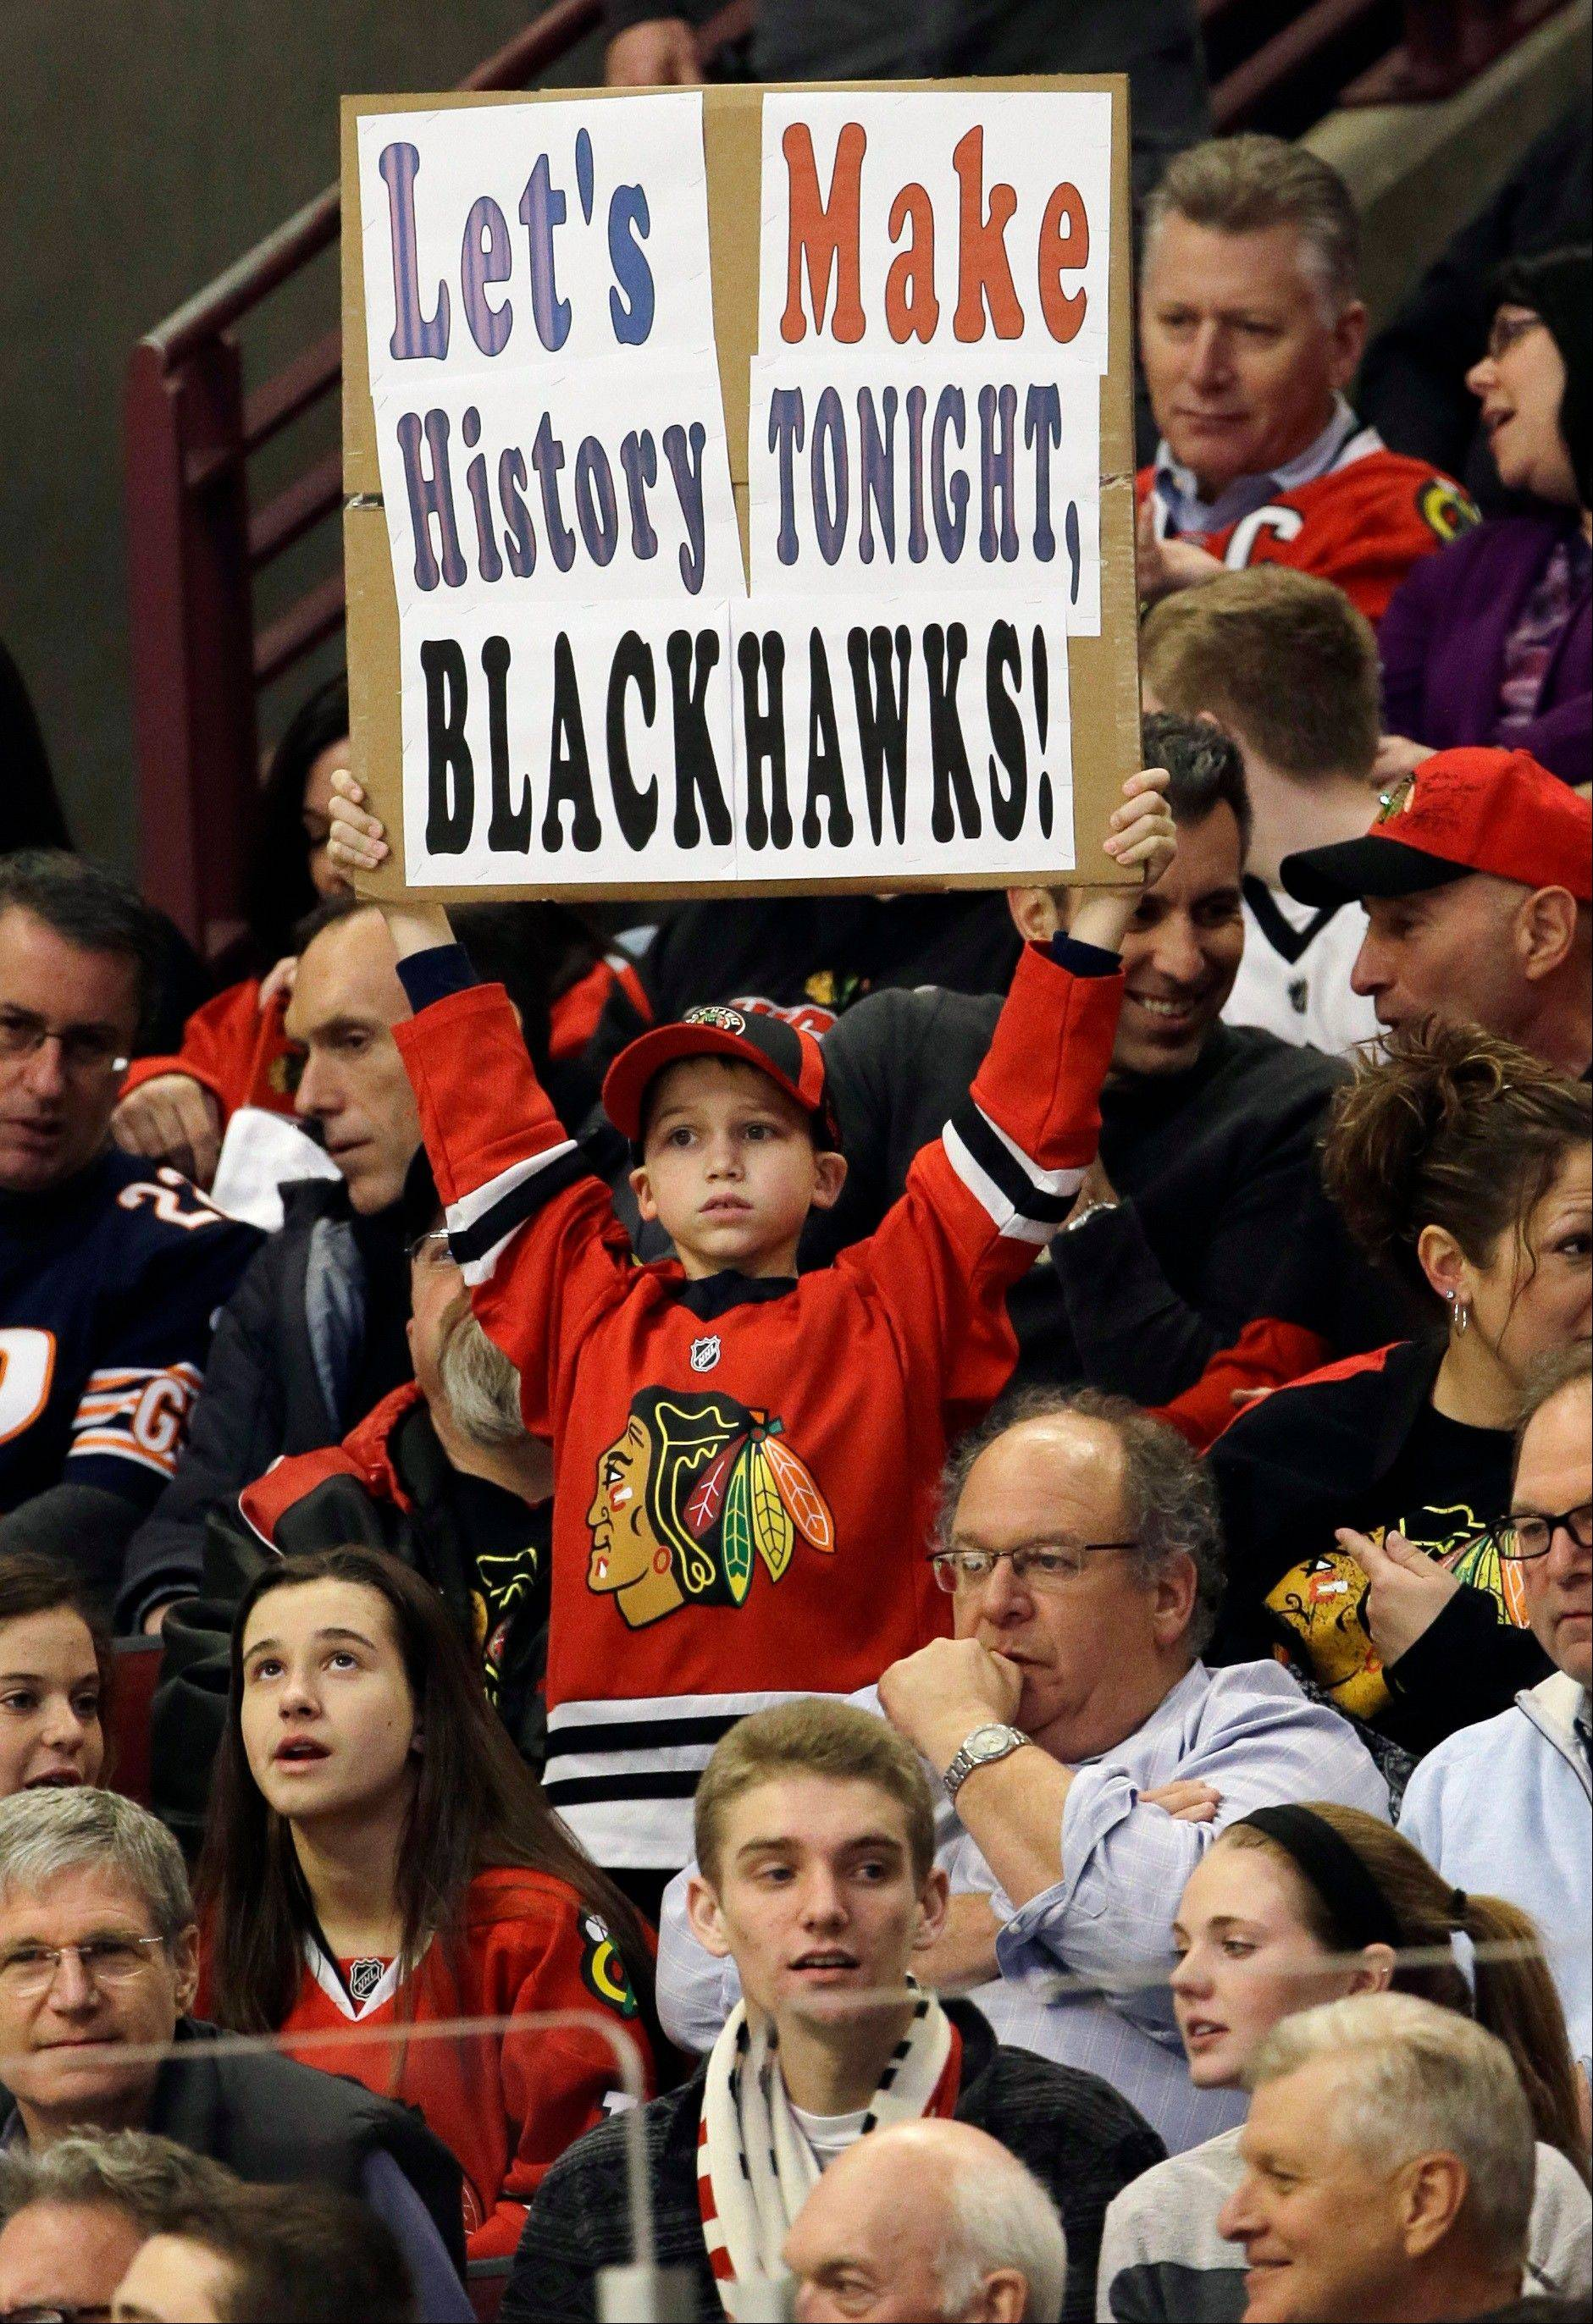 A Chicago Blackhawks fan got his wish granted Friday night as the Hawks beat the San Jose Sharks 2-1 at the United Center to set the NHL record with 17 games with at least one point.